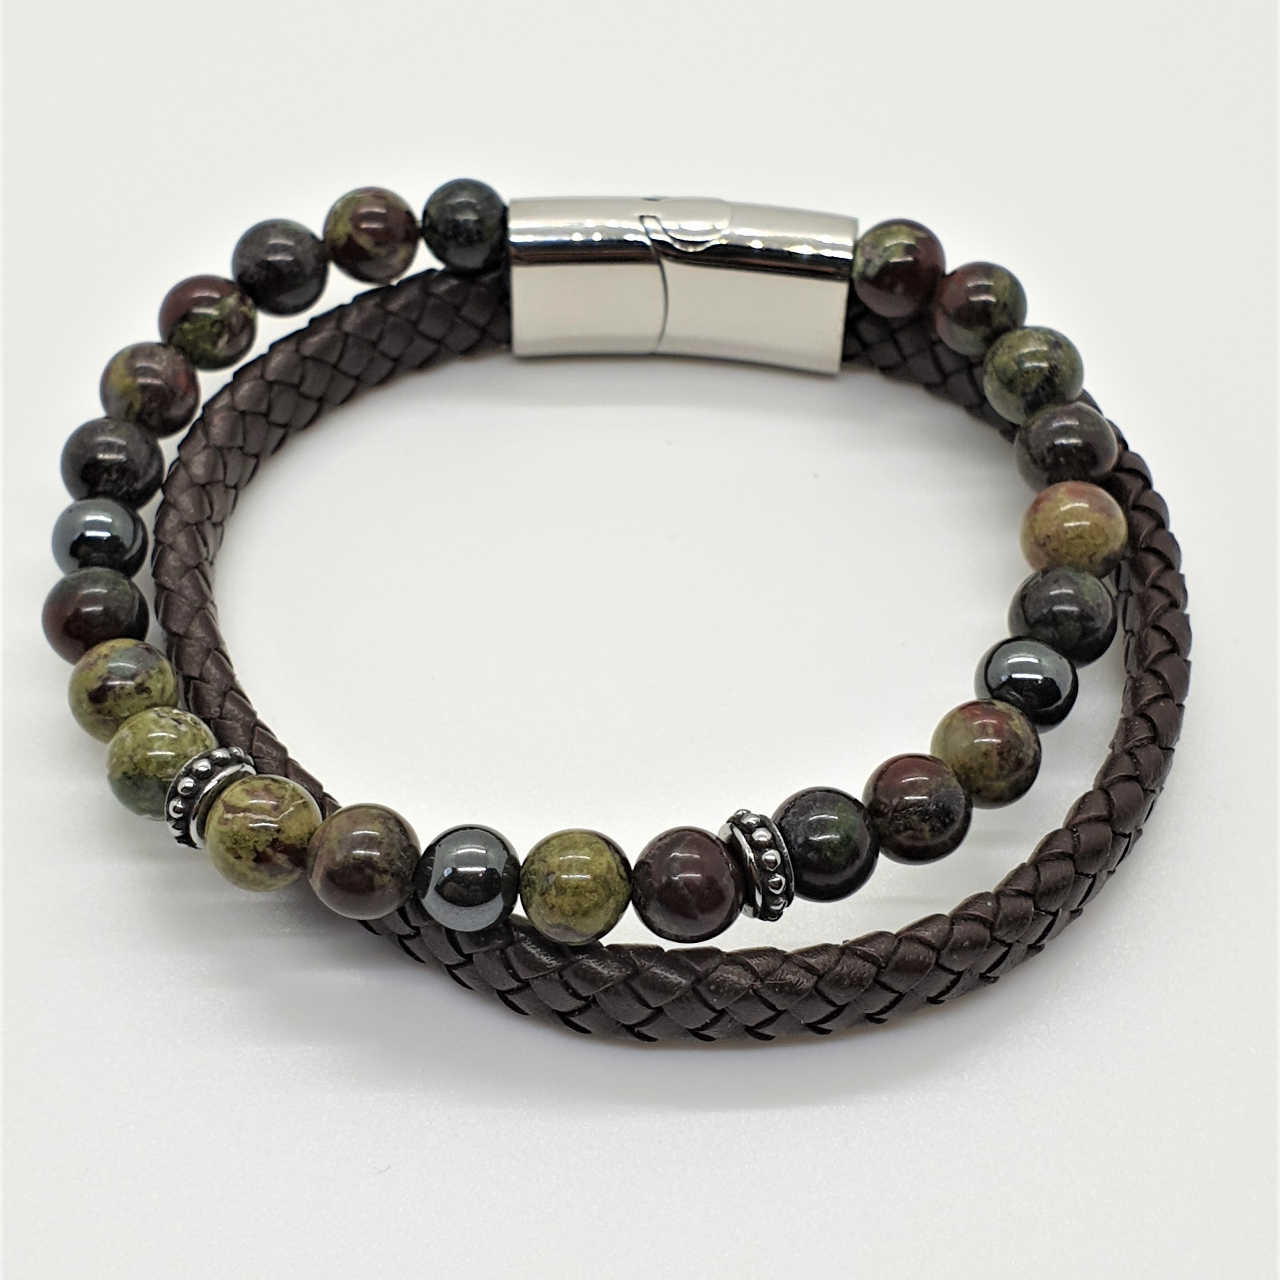 """Product Image 1 - """"Beads & Leather Bracelets for"""